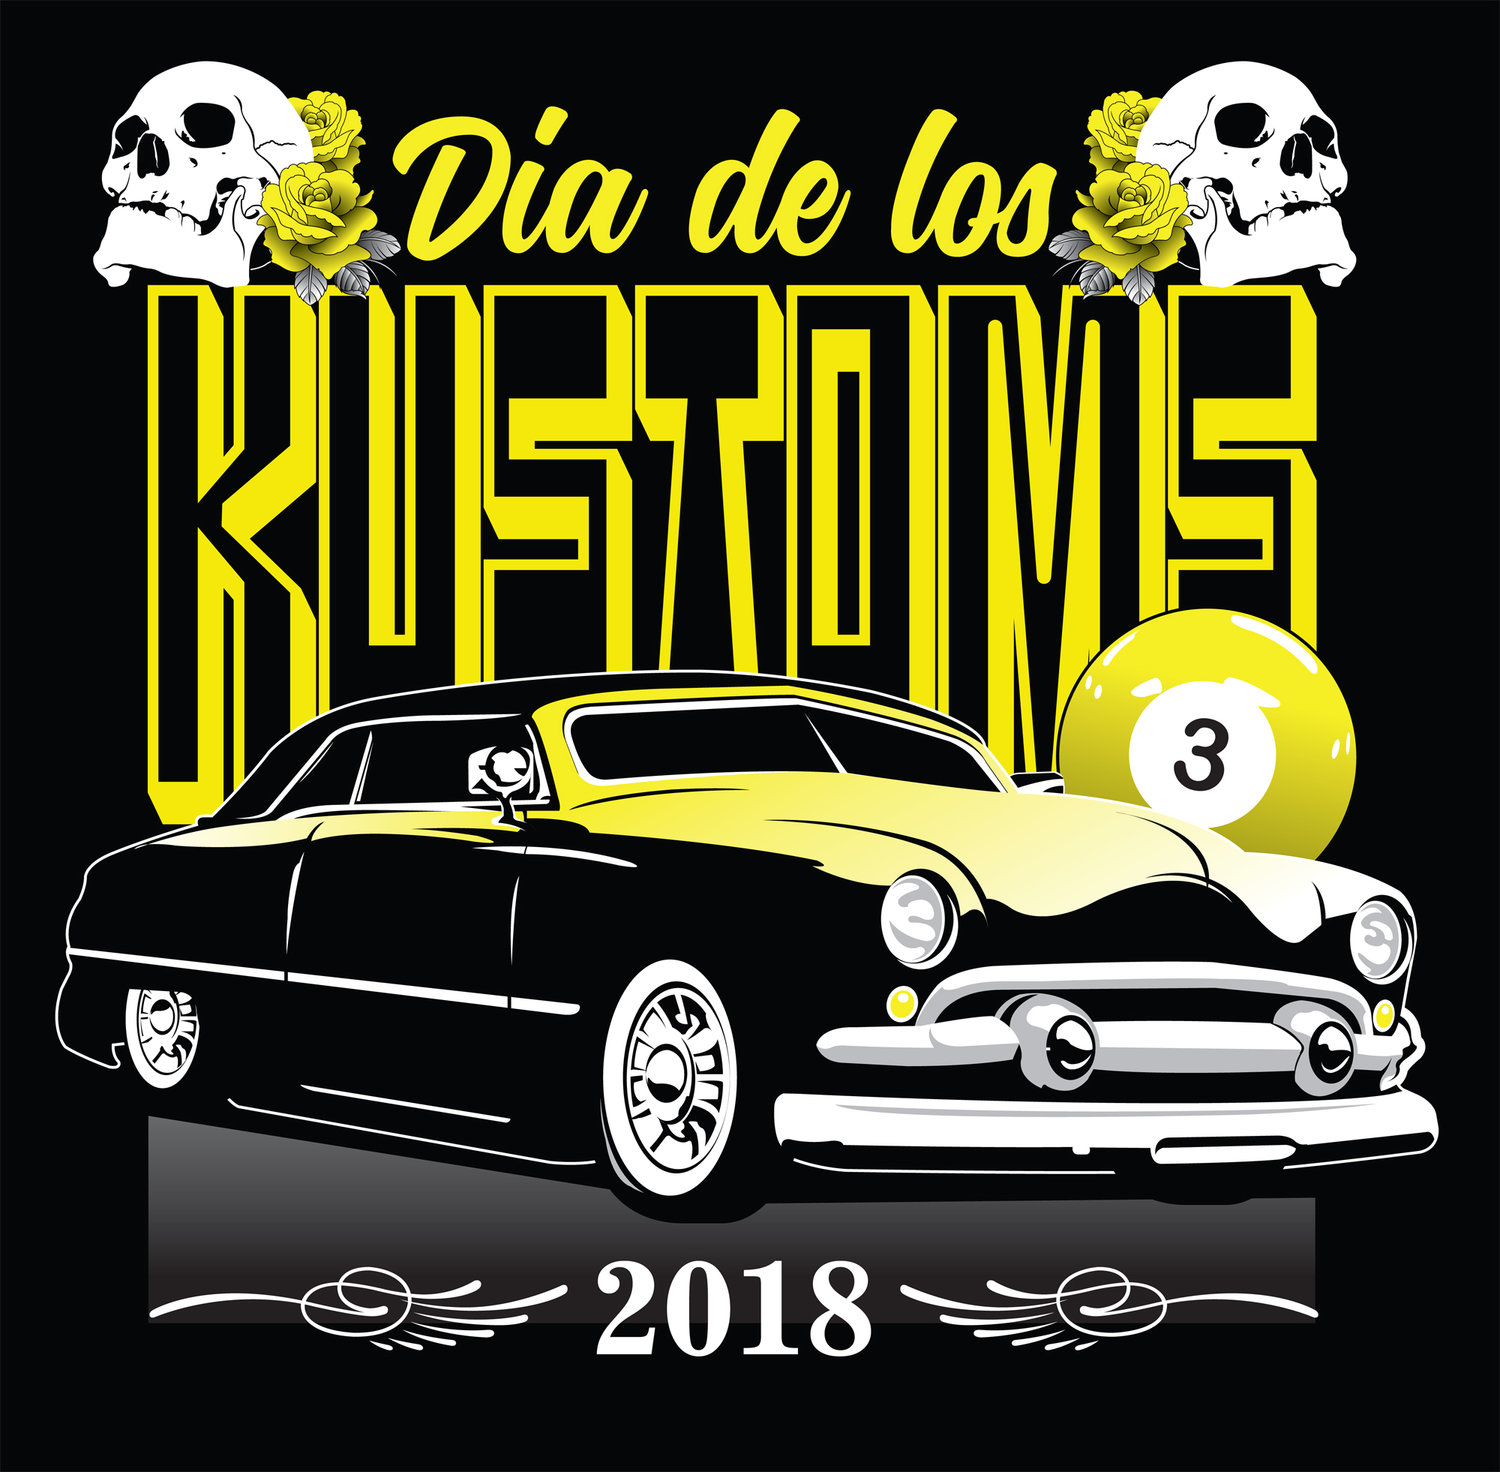 DIA DE LOS KUSTOMS